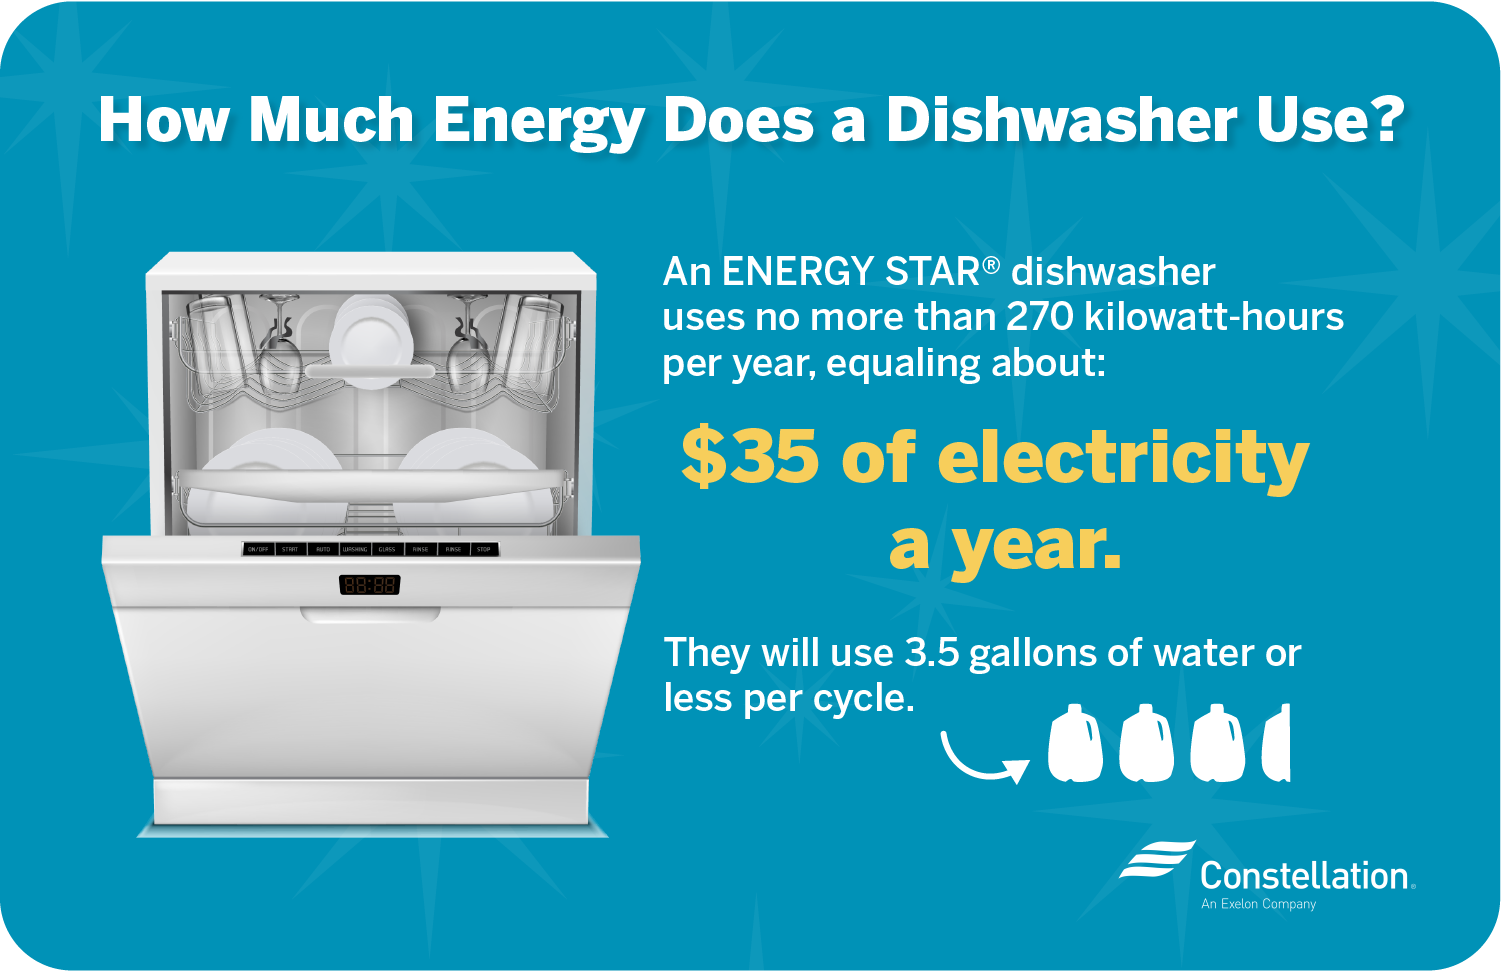 How much energy does a dishwasher use